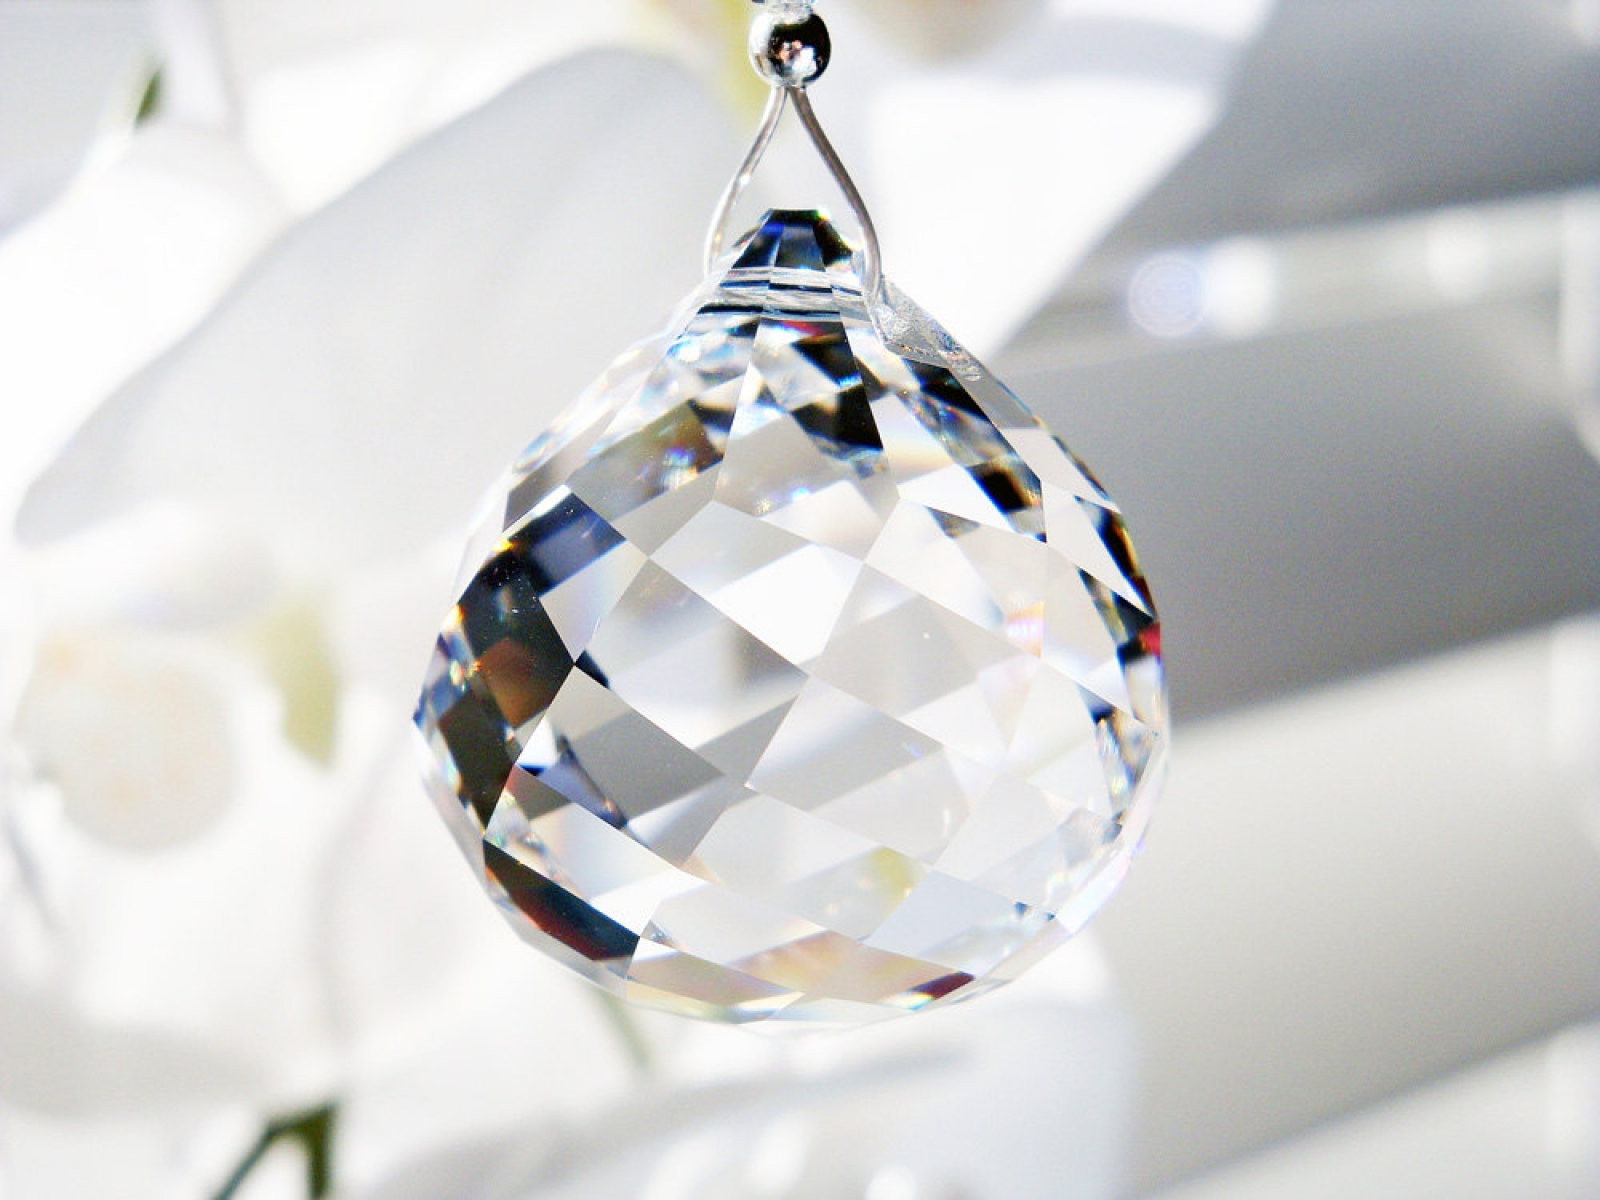 Swarovski Crystal Ball Ceiling Fan Pull Chain Light Pulls